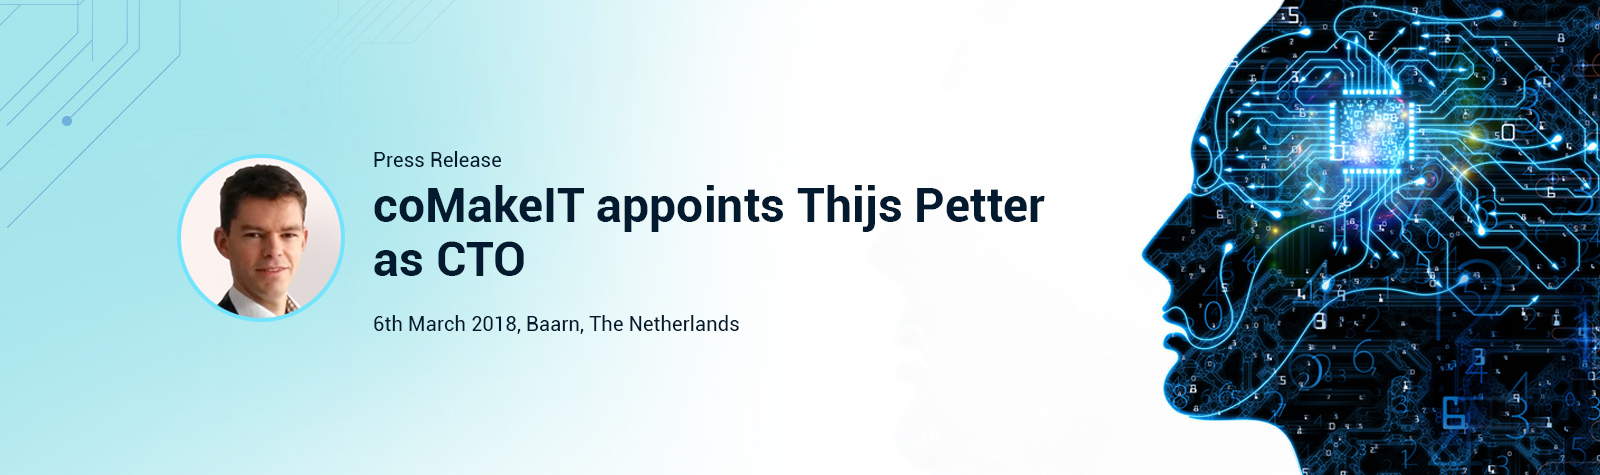 coMakeIT appoints Thijs Petter as CTO